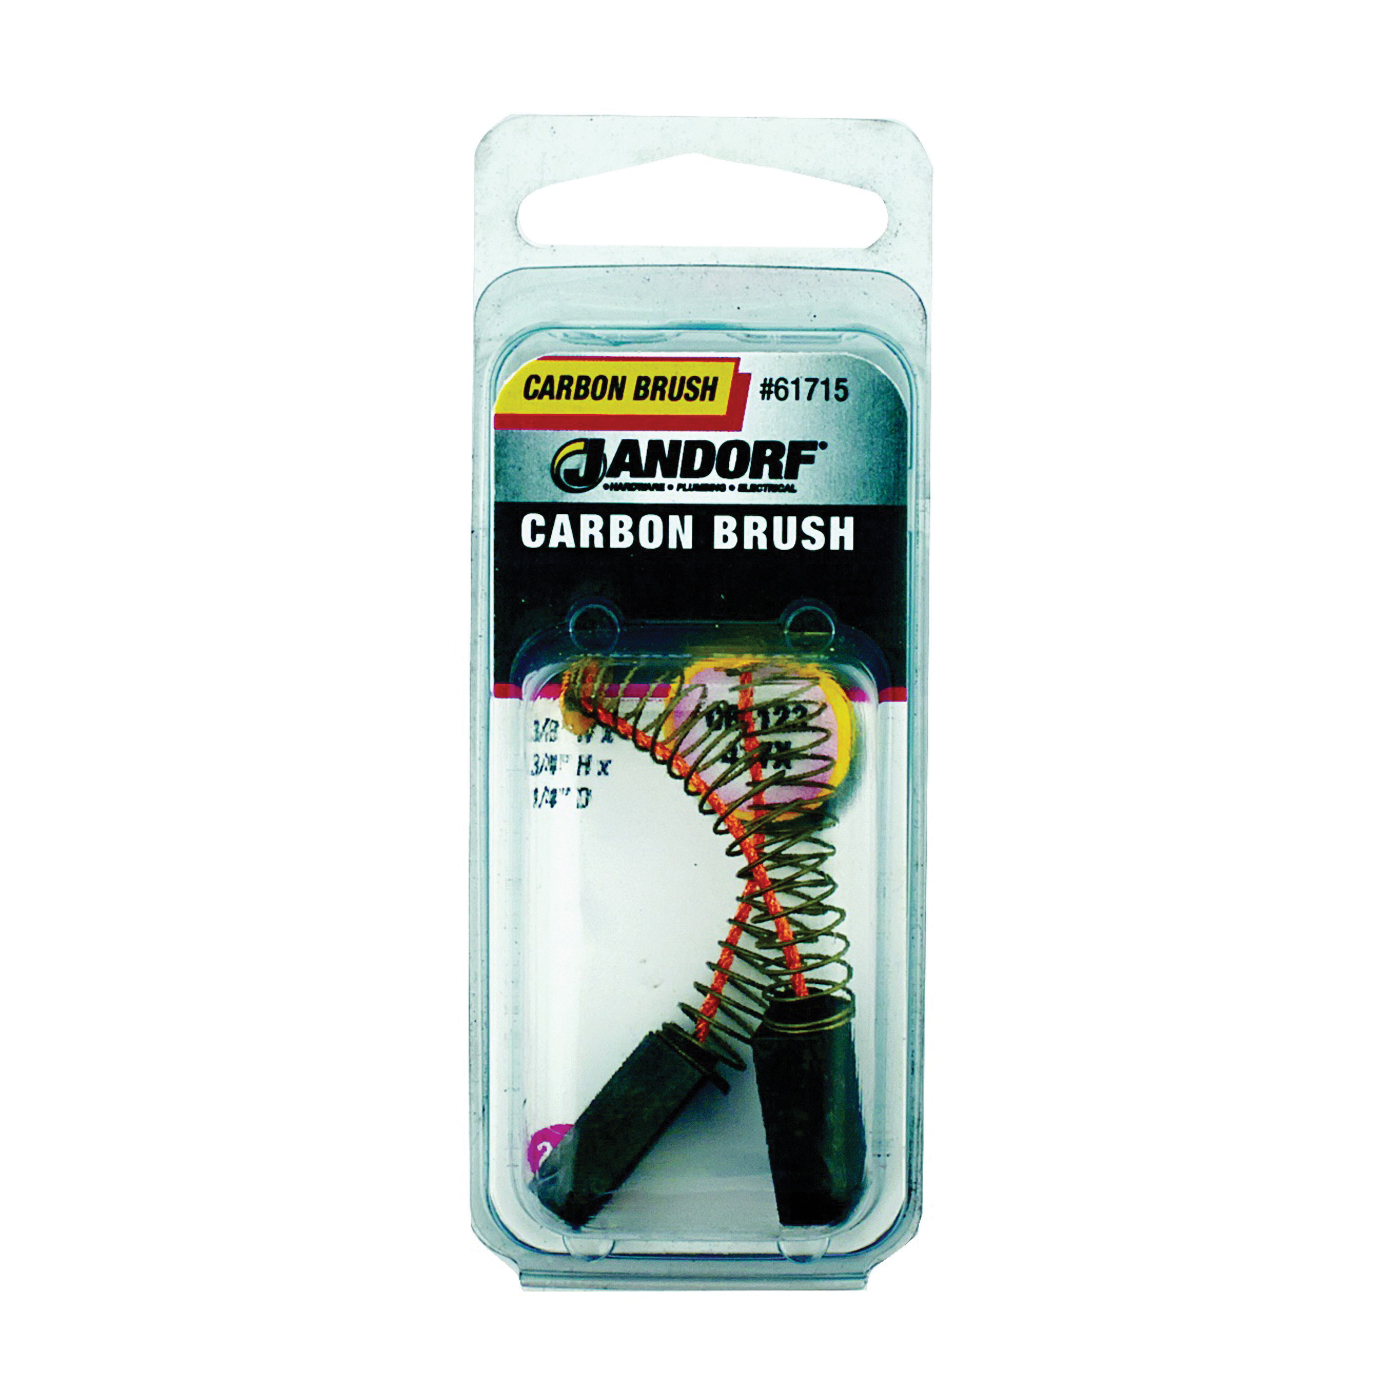 Picture of Jandorf 61715 Carbon Brush, 2 -Piece, Pack